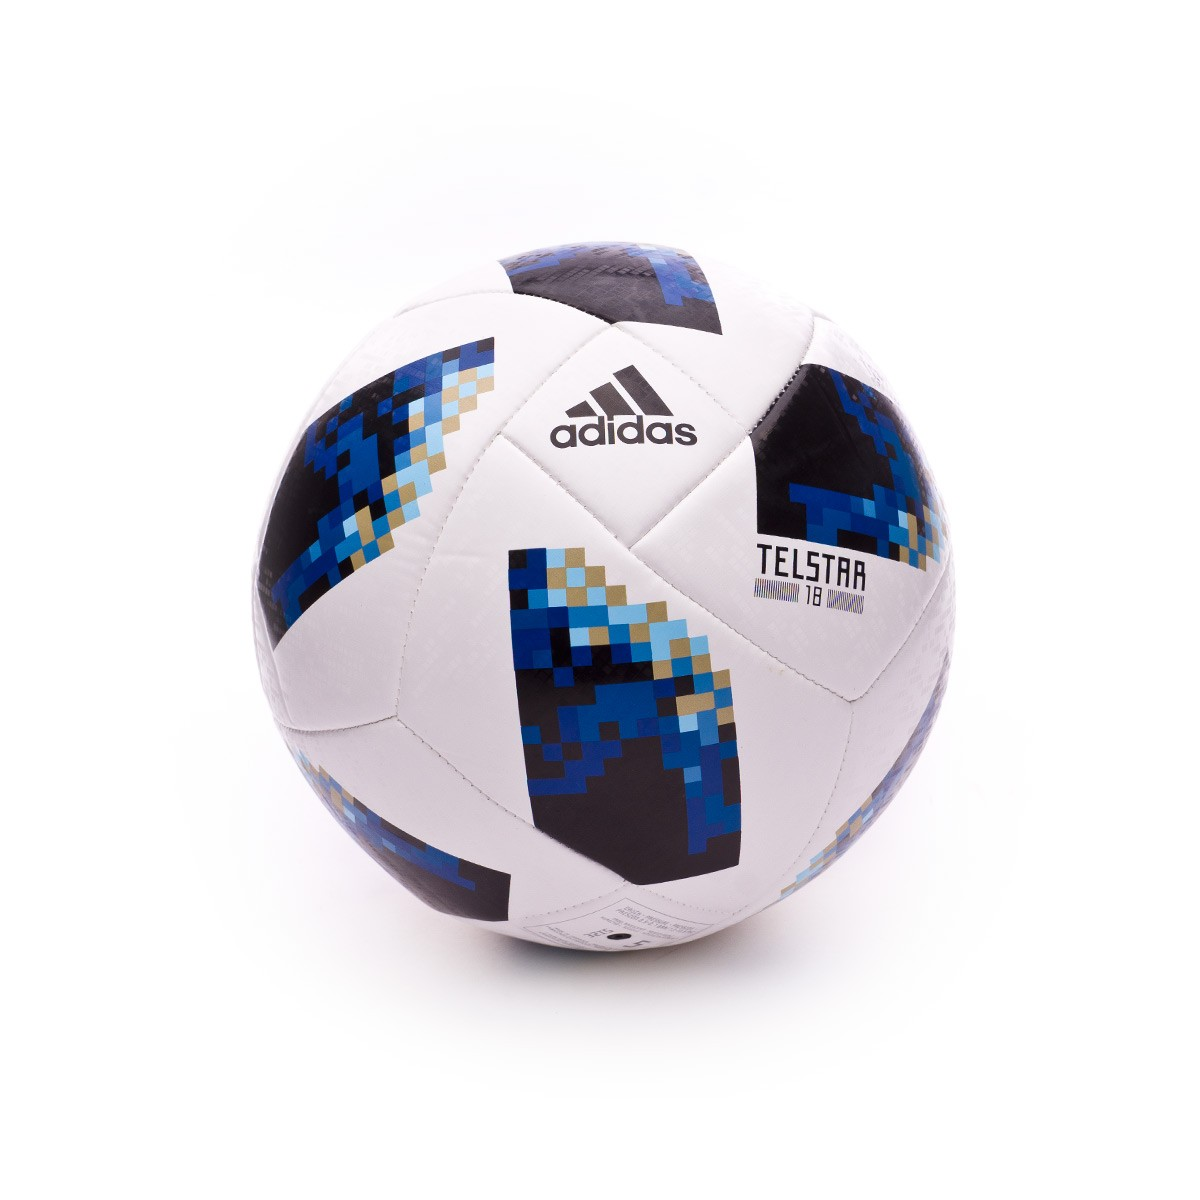 3ebcbf44f6d Ball adidas World Cup 18 Argentina Telstar 2017-2018 White-Black - Tienda  de fútbol Fútbol Emotion